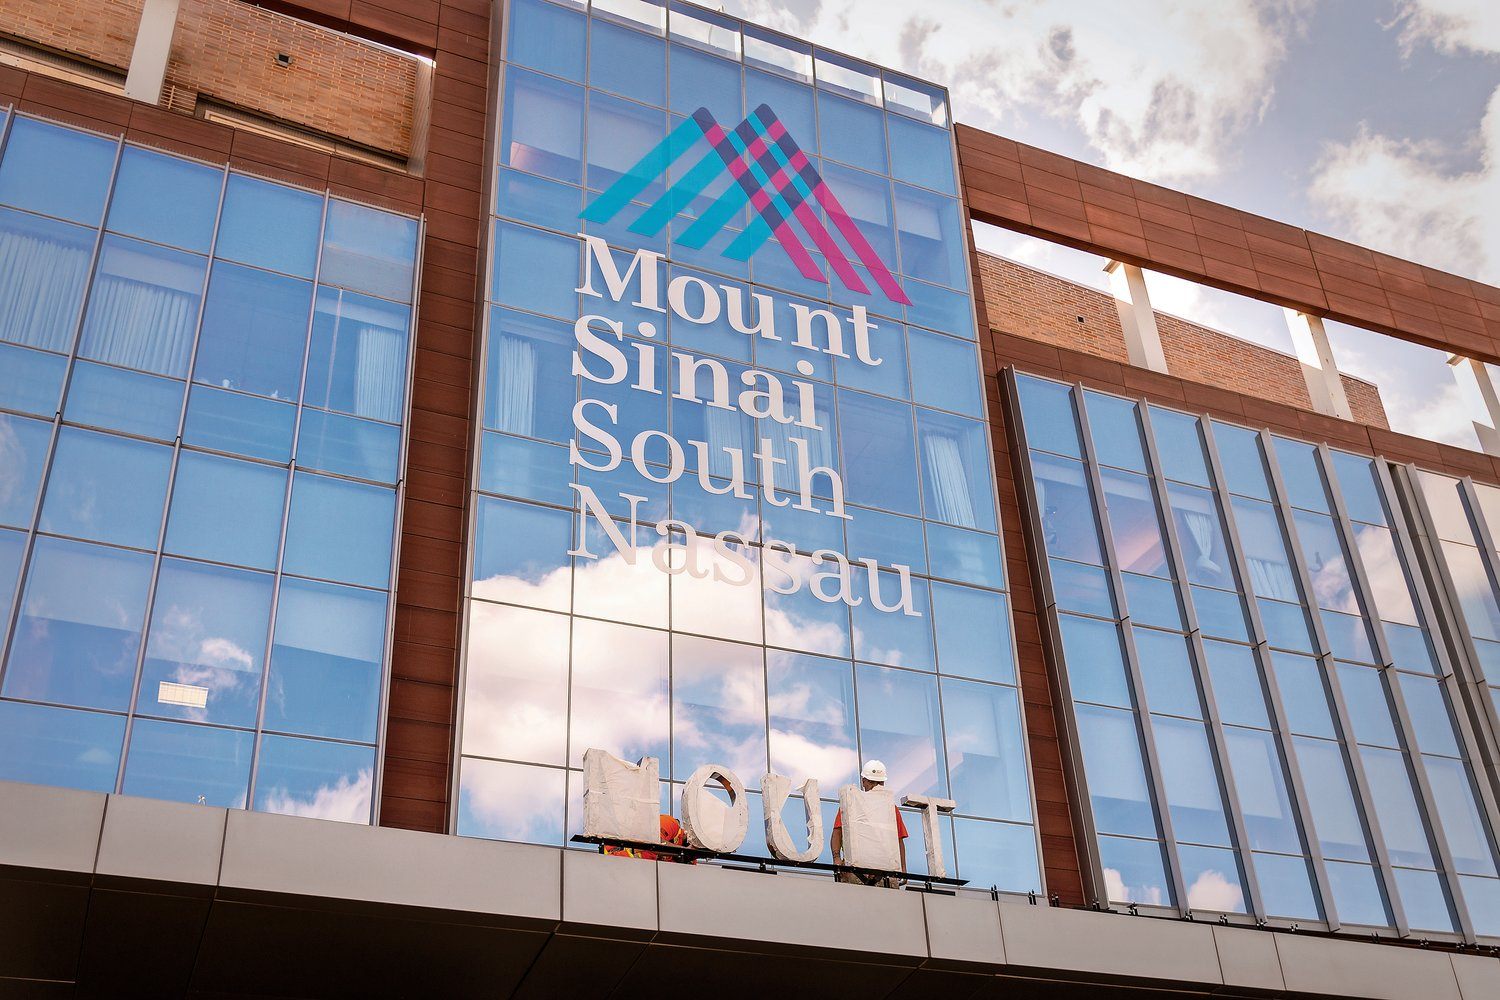 South Nassau Communities Hospital announced on Sept. 26 that it had changed its name to Mount Sinai South Nassau.